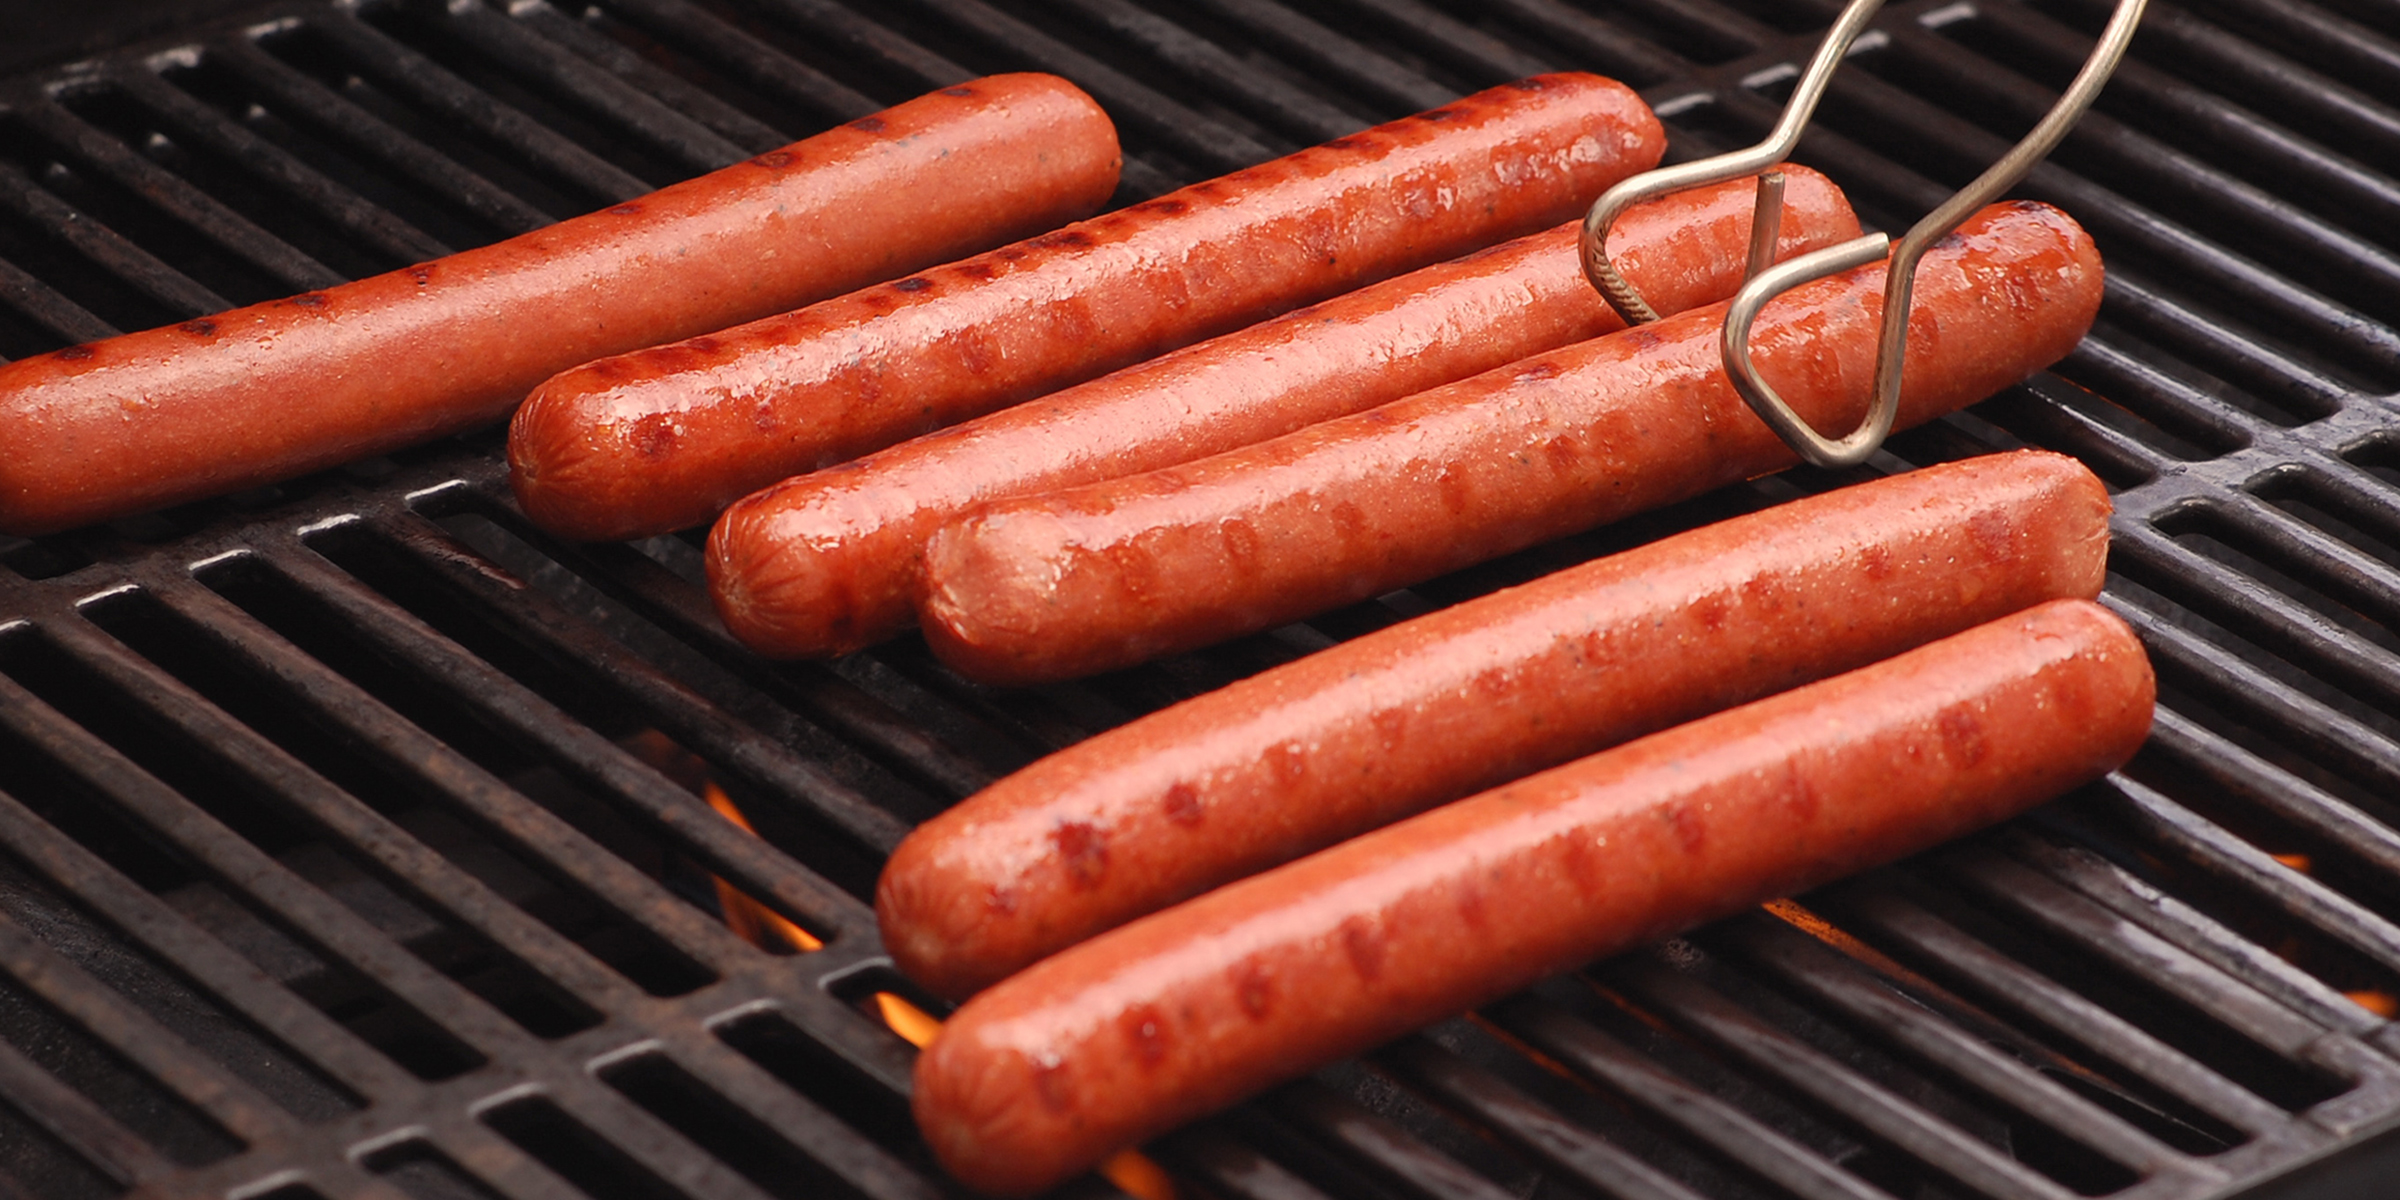 9 common mistakes people make when cooking hot dogs